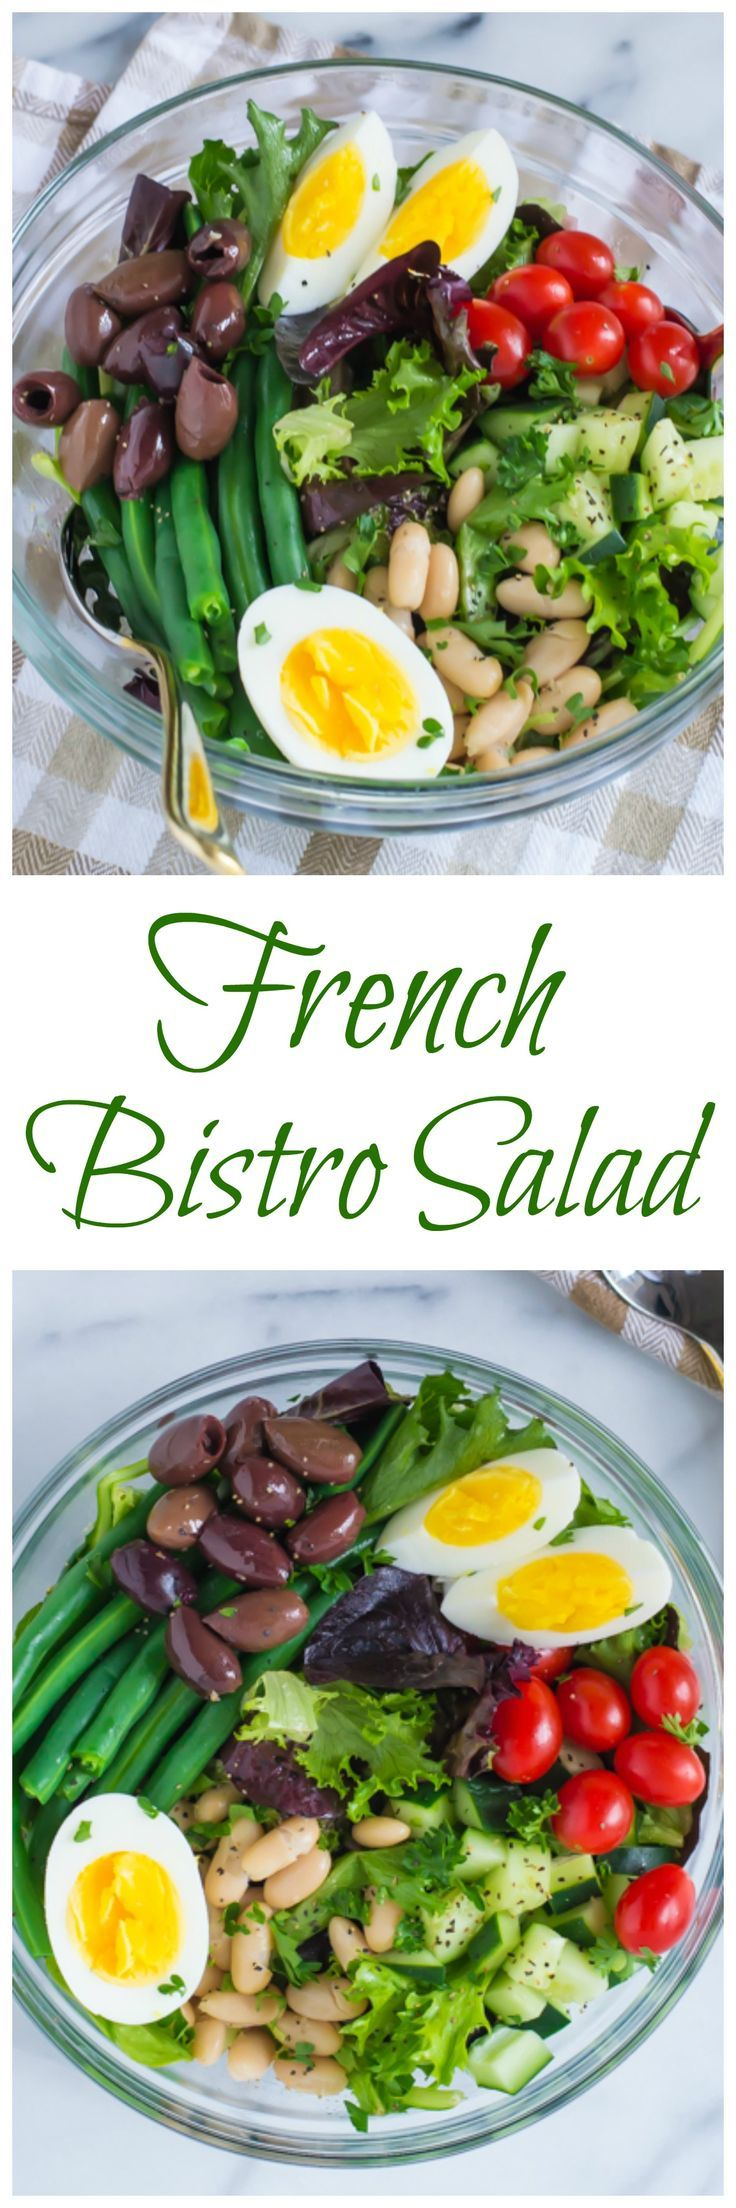 French Bistro Salad —An easy version of the classic French Nicoise salad that's served in Paris cafes. Fresh, filling, and anyone can make it! Recipe at wellplated.com @wellplated #lowcarb #glutenfree #vegetarian